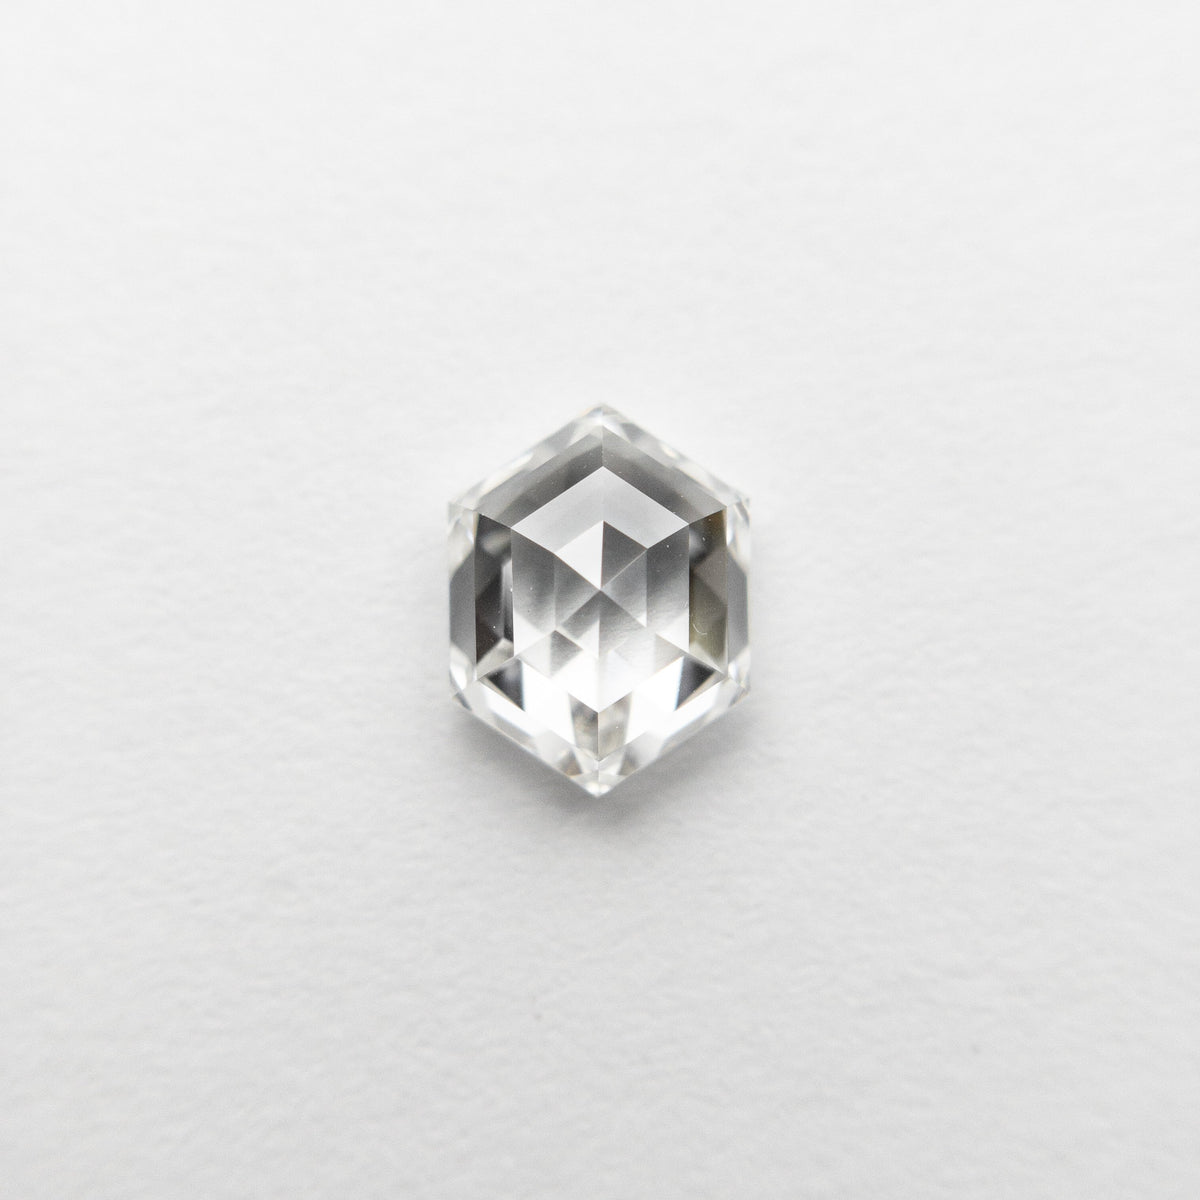 0.71ct 6.27x4.77x2.79mm VVS2 F Hexagon Rosecut 18458-04 🇷🇺